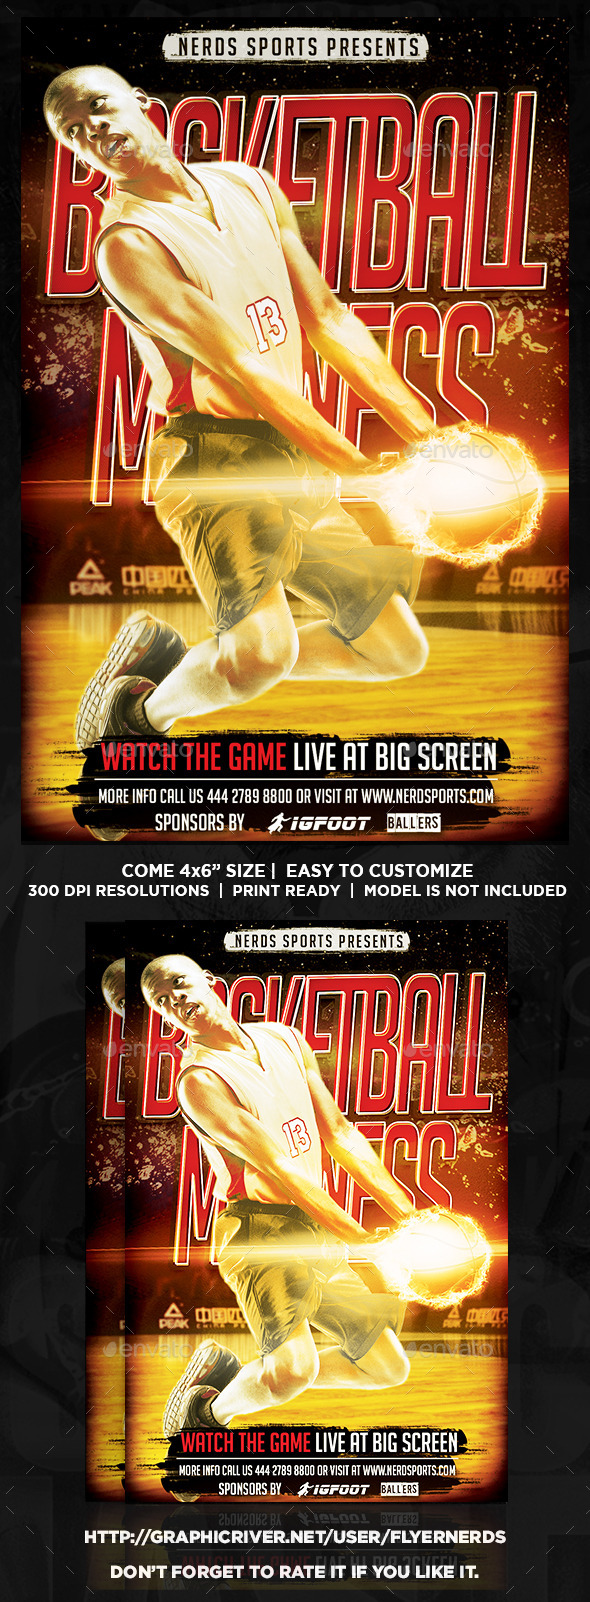 GraphicRiver Basketball Madness Sports Flyer 8934939